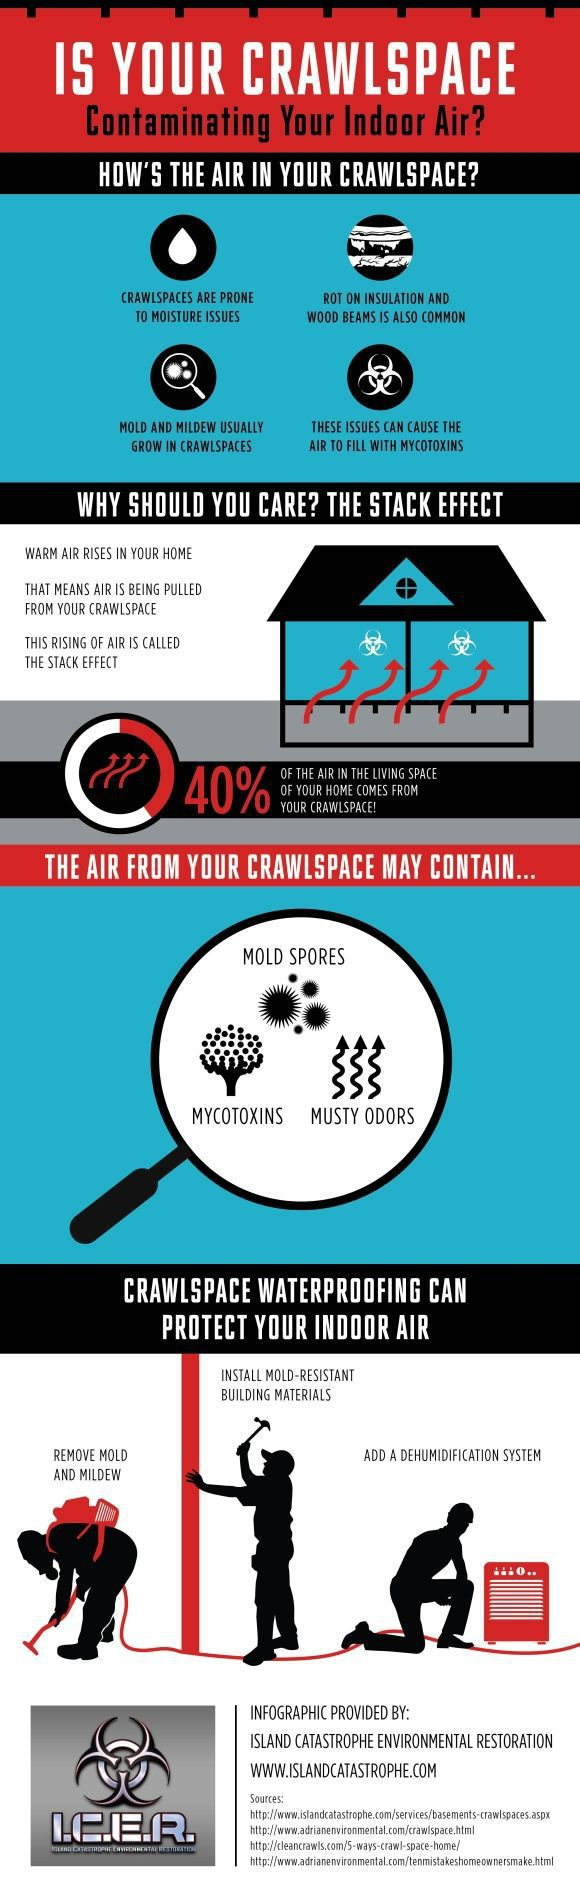 Your Crawlspace And Indoor Air Quality Summary!